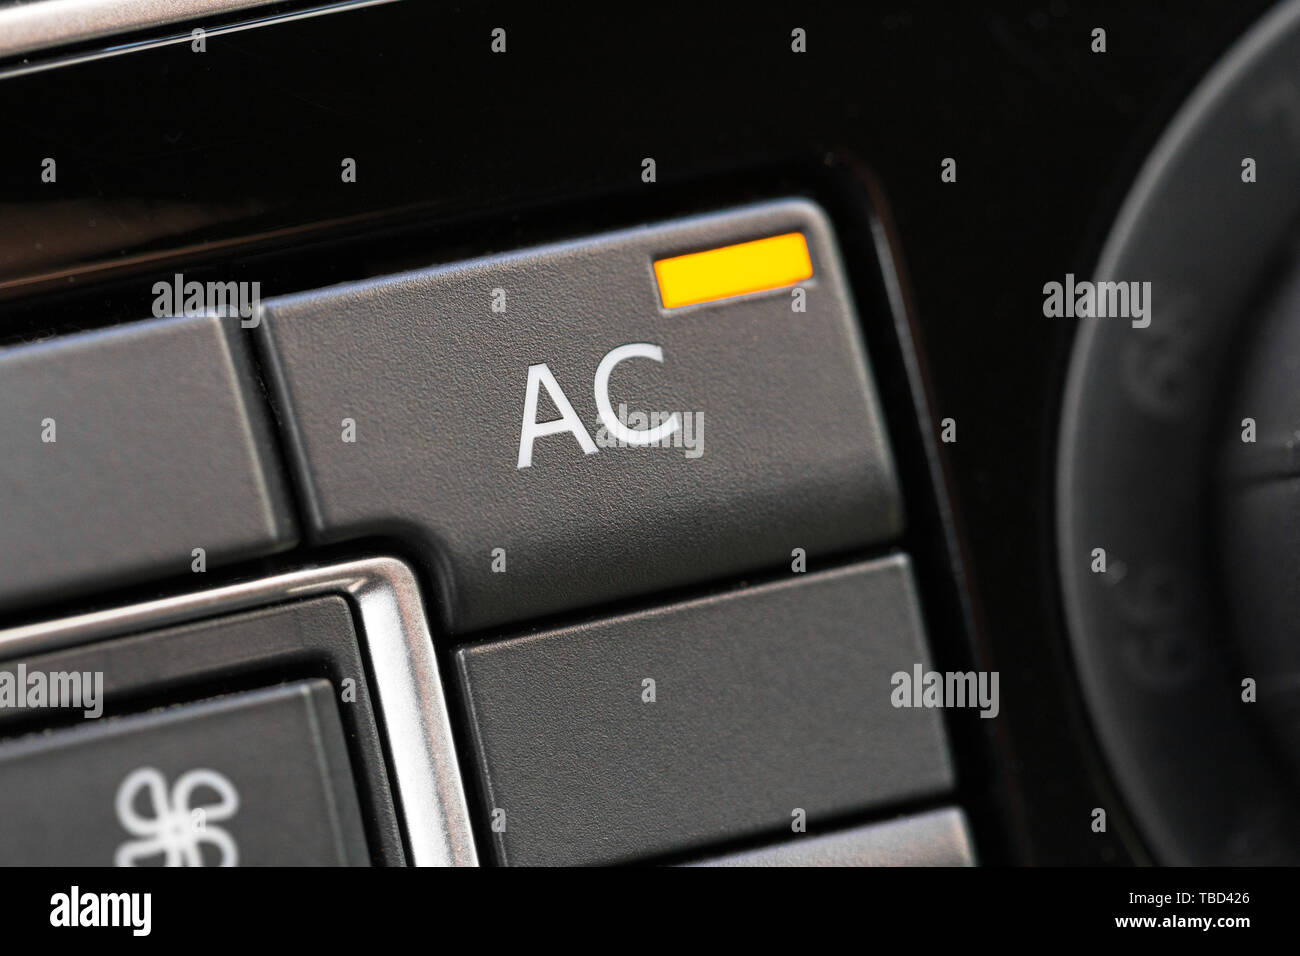 Climate Control Unit Stock Photos & Climate Control Unit